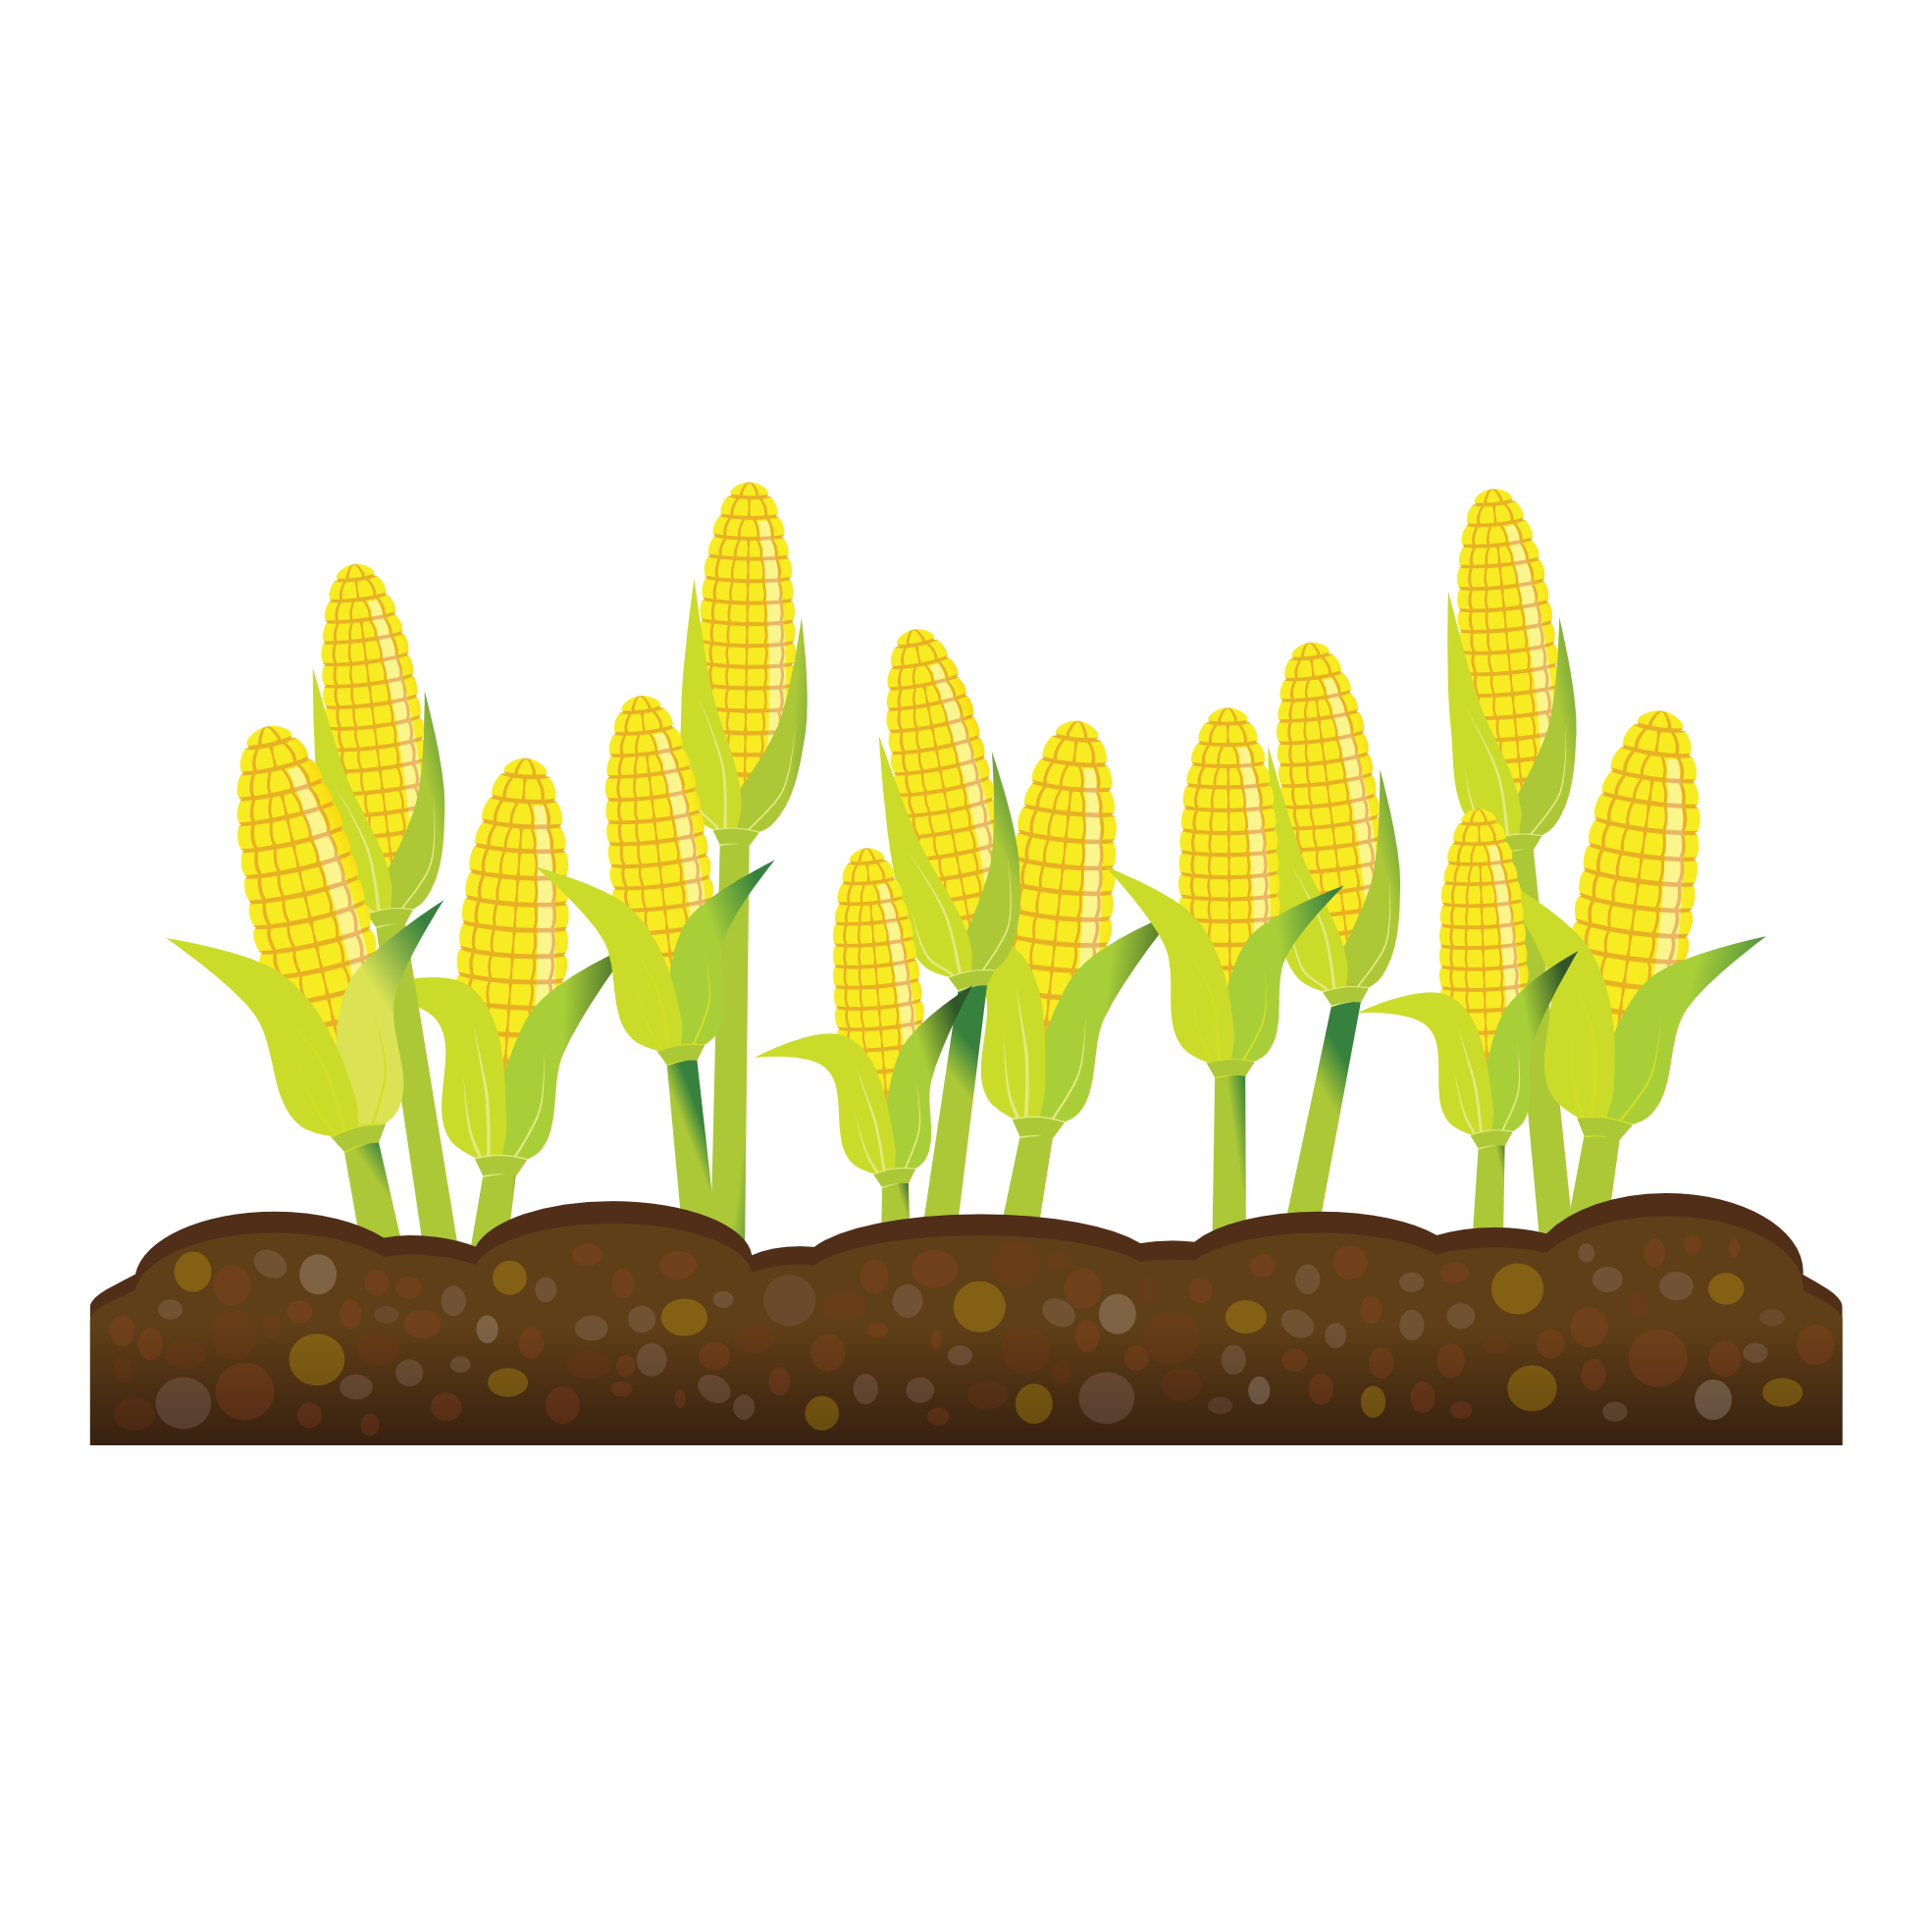 Feilds barn free on. Clipart tree corn